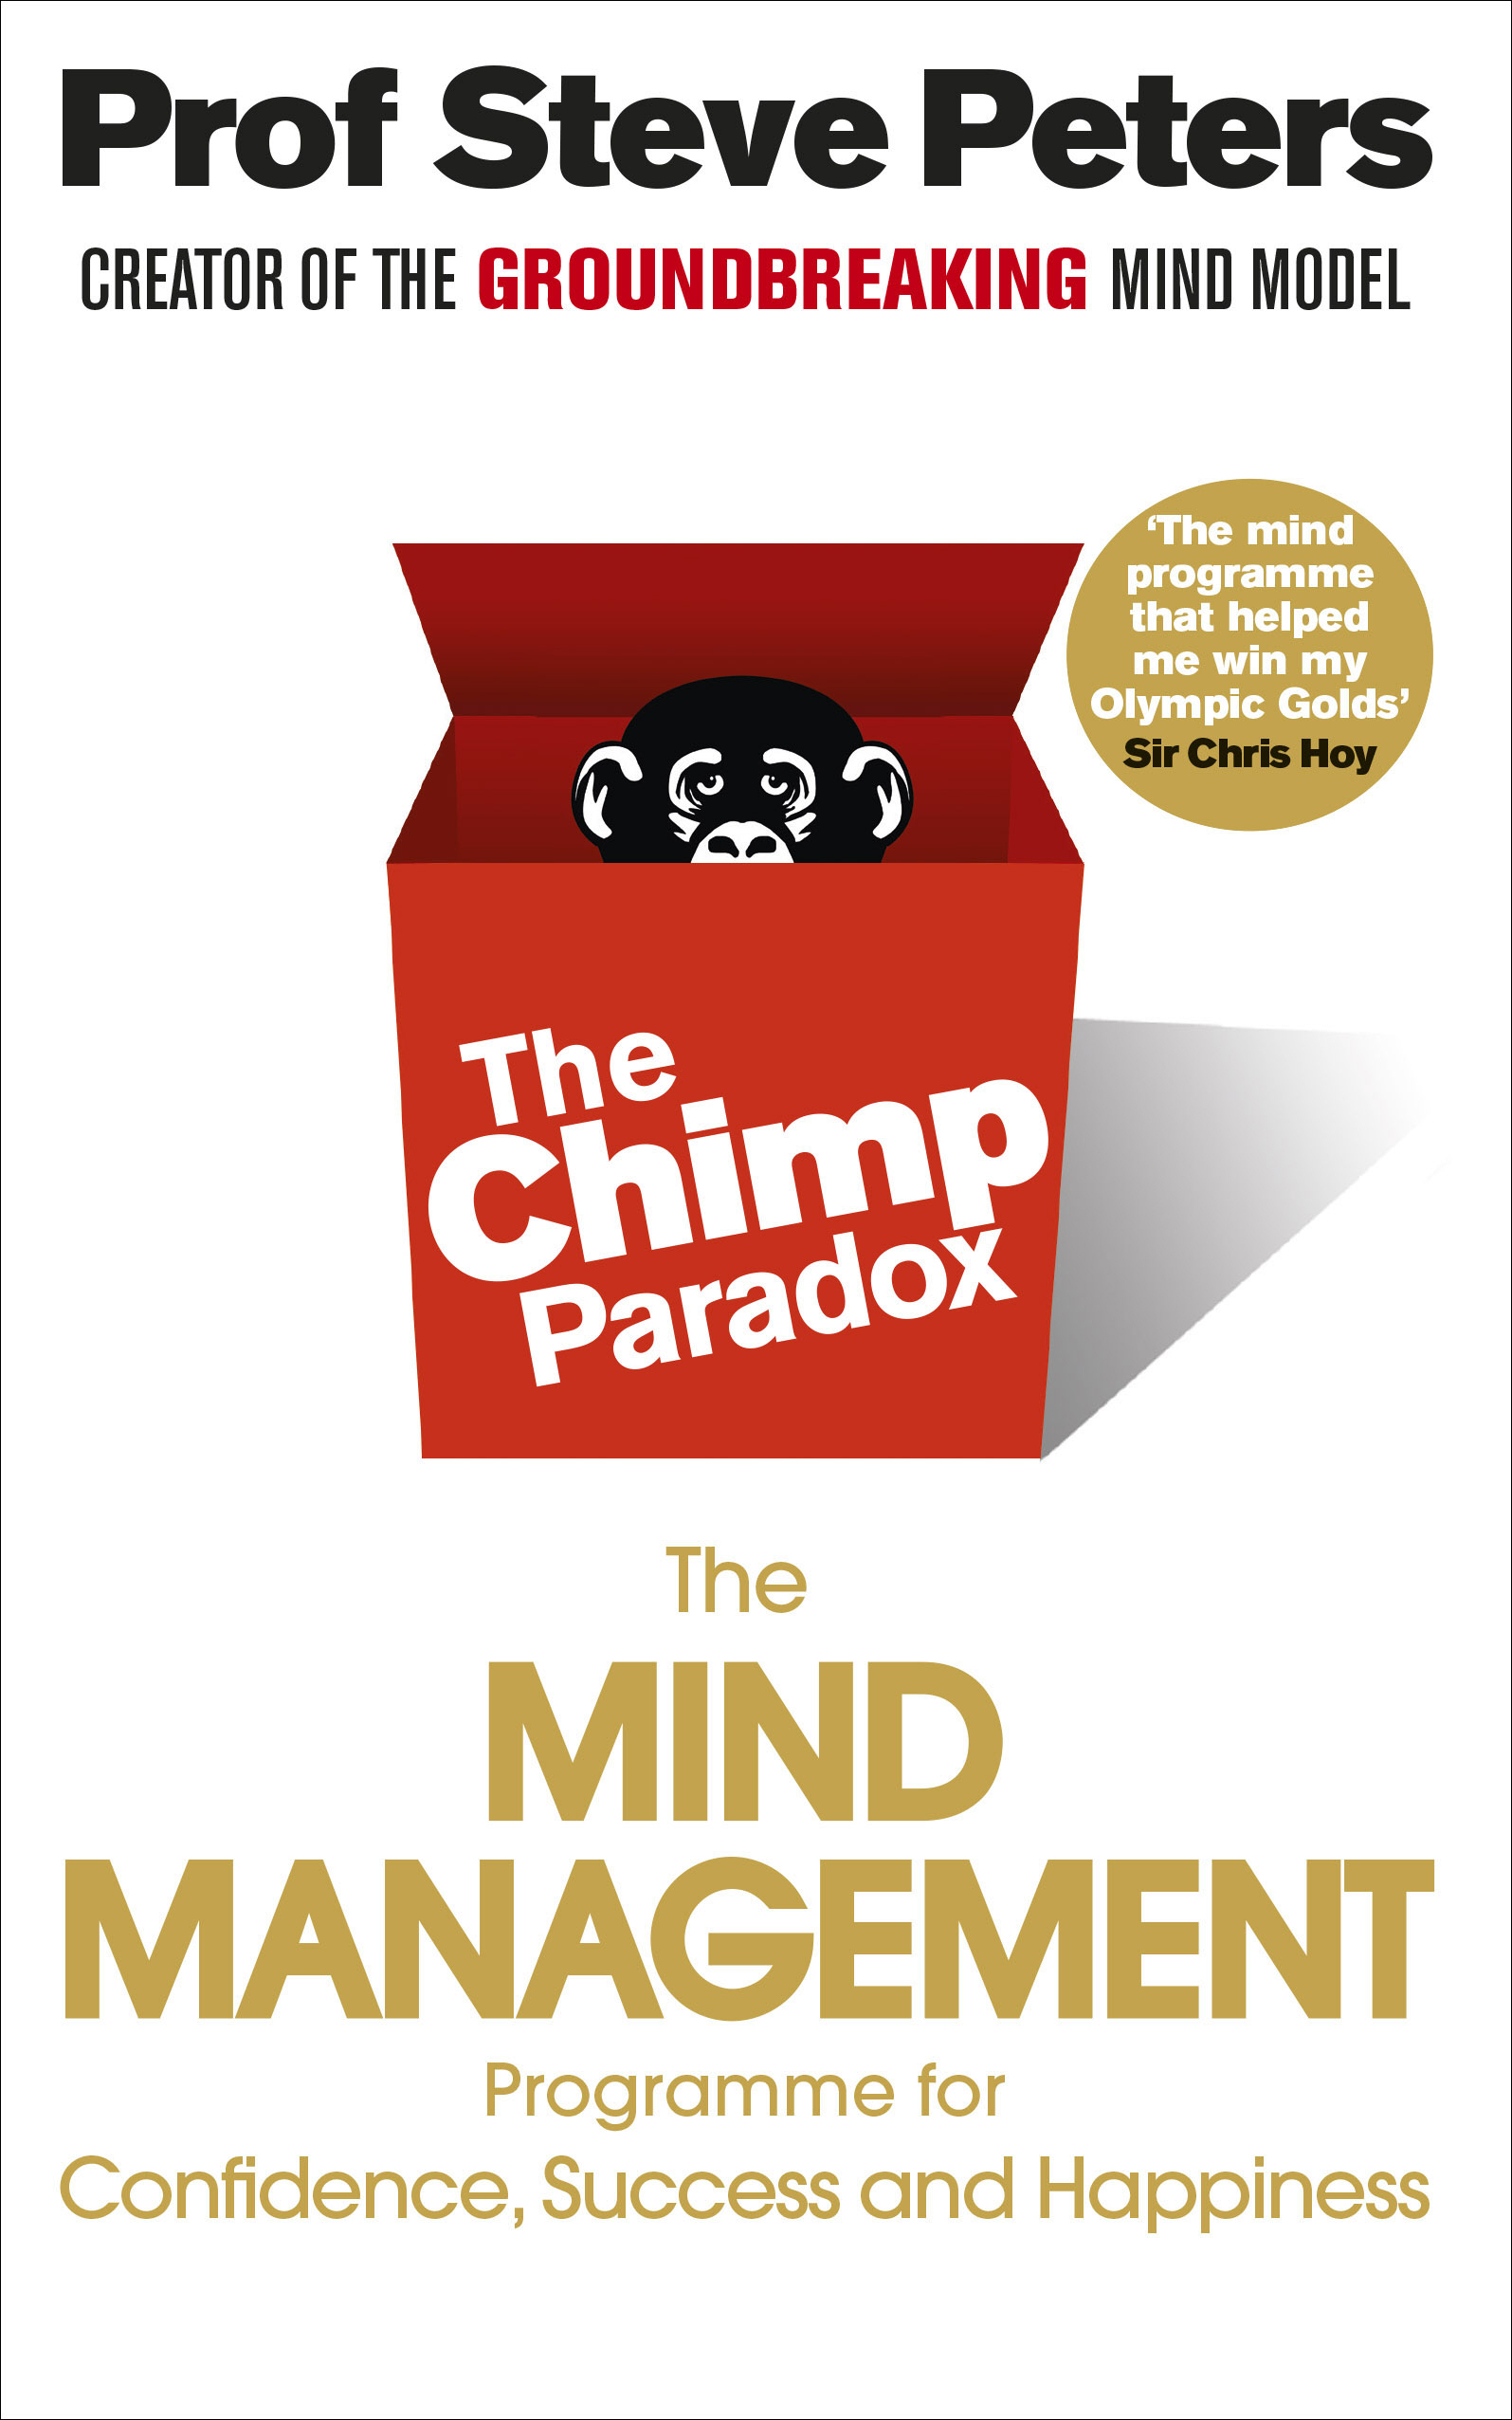 The Chimp Paradox The Acclaimed Mind Management Programme to Help You Achieve Success, Confidence and Happiness